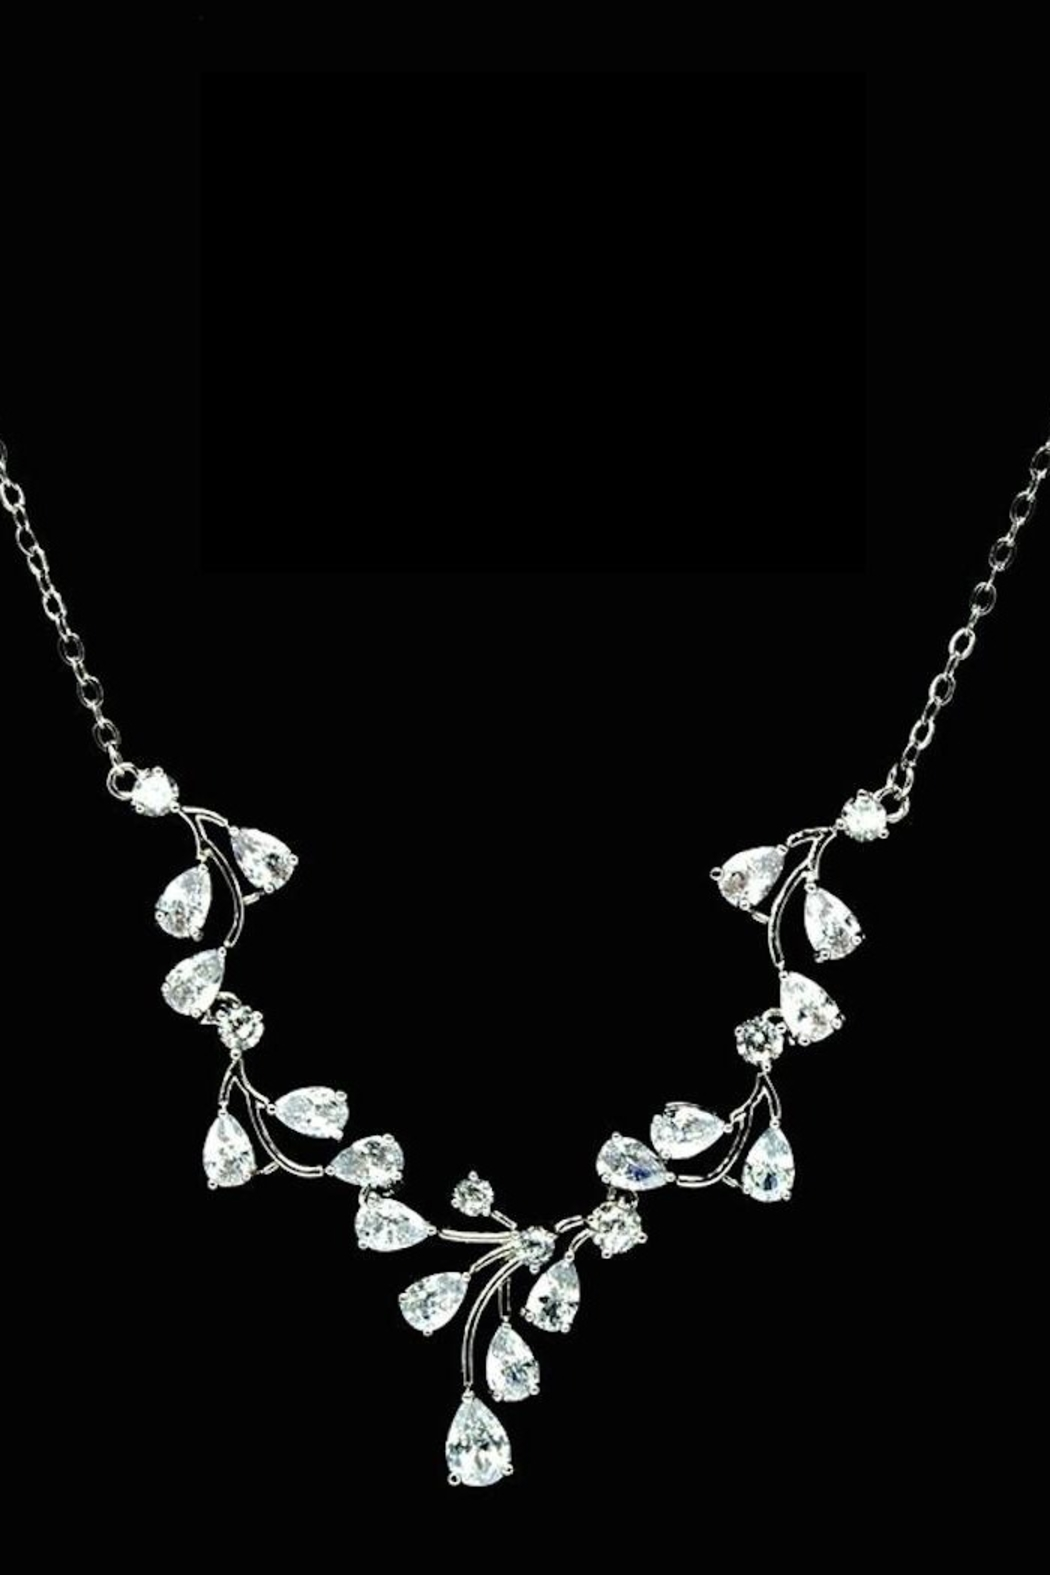 US Jewelry House Vine Pave Necklace - Main Image